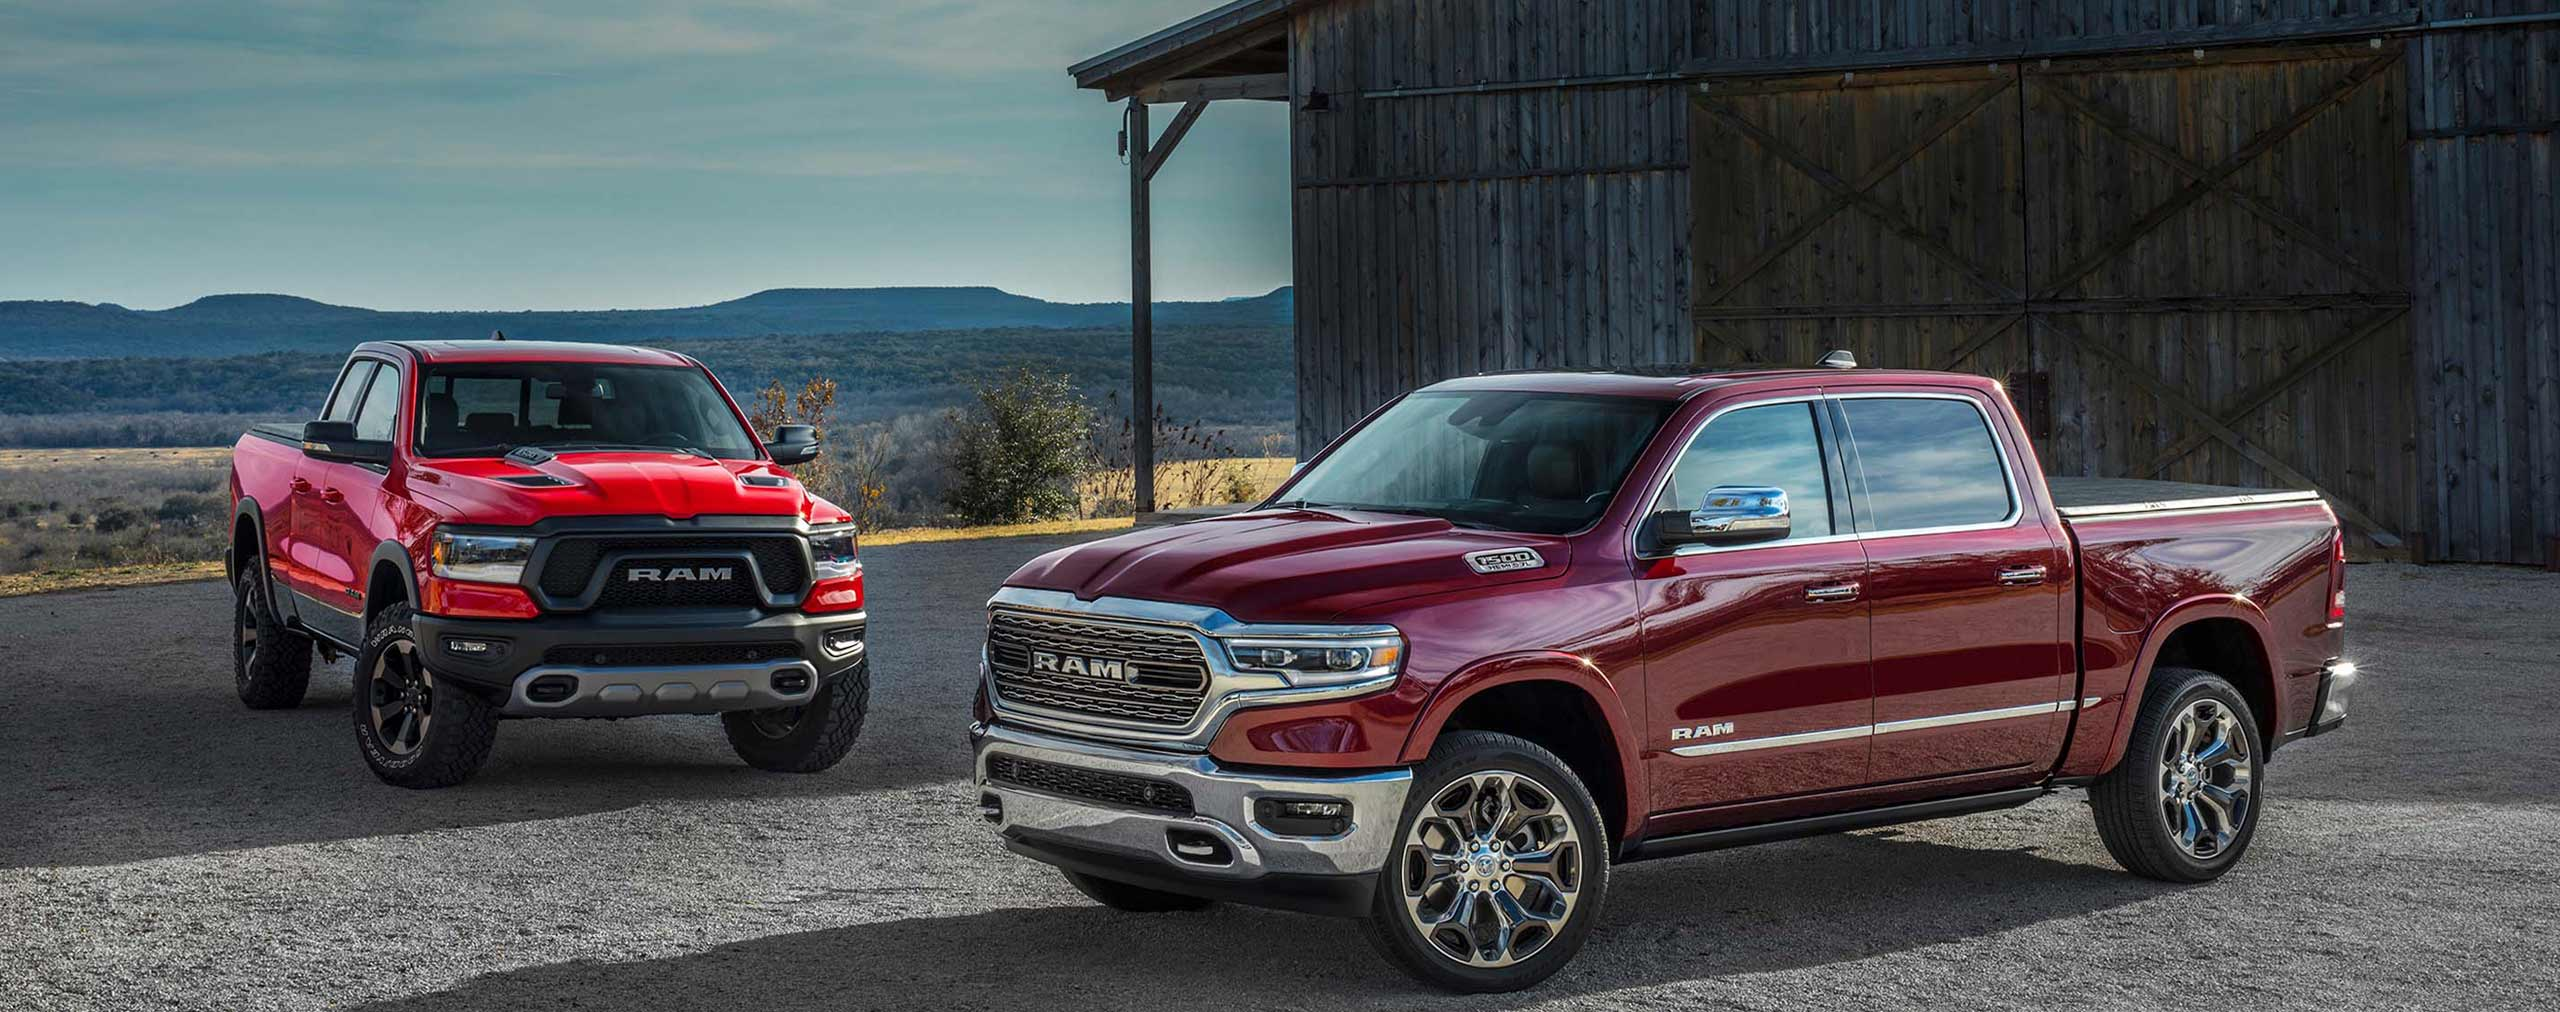 New RAM 1500 Lease and Specials in Antioch Illinois